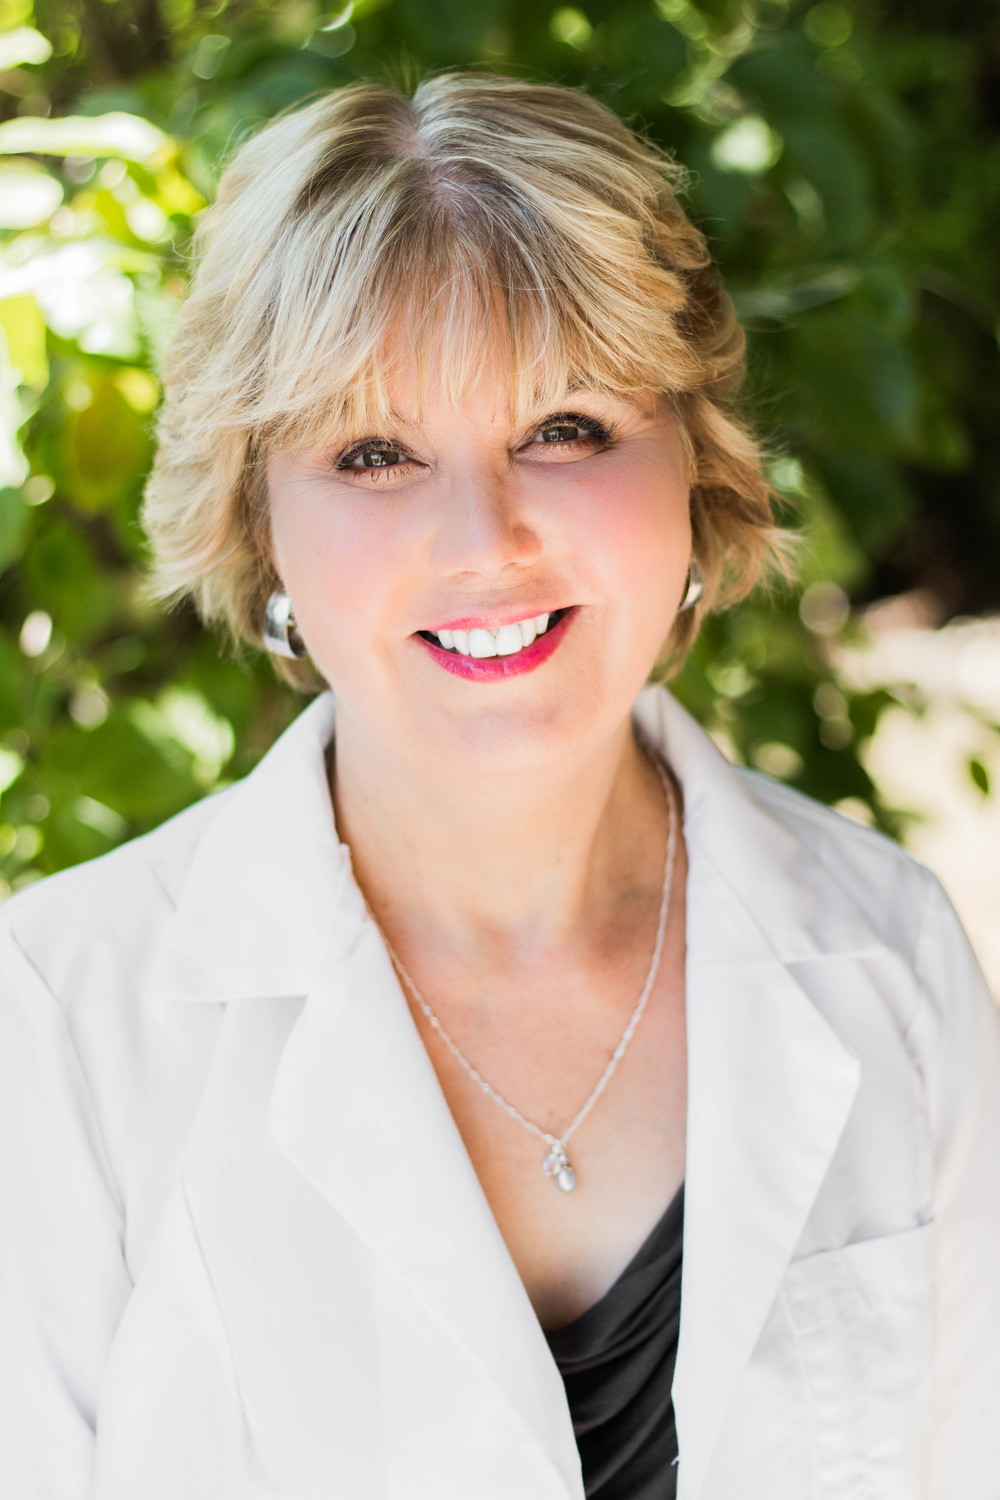 doctor cynthia cote has over 20 years of professional medical experience